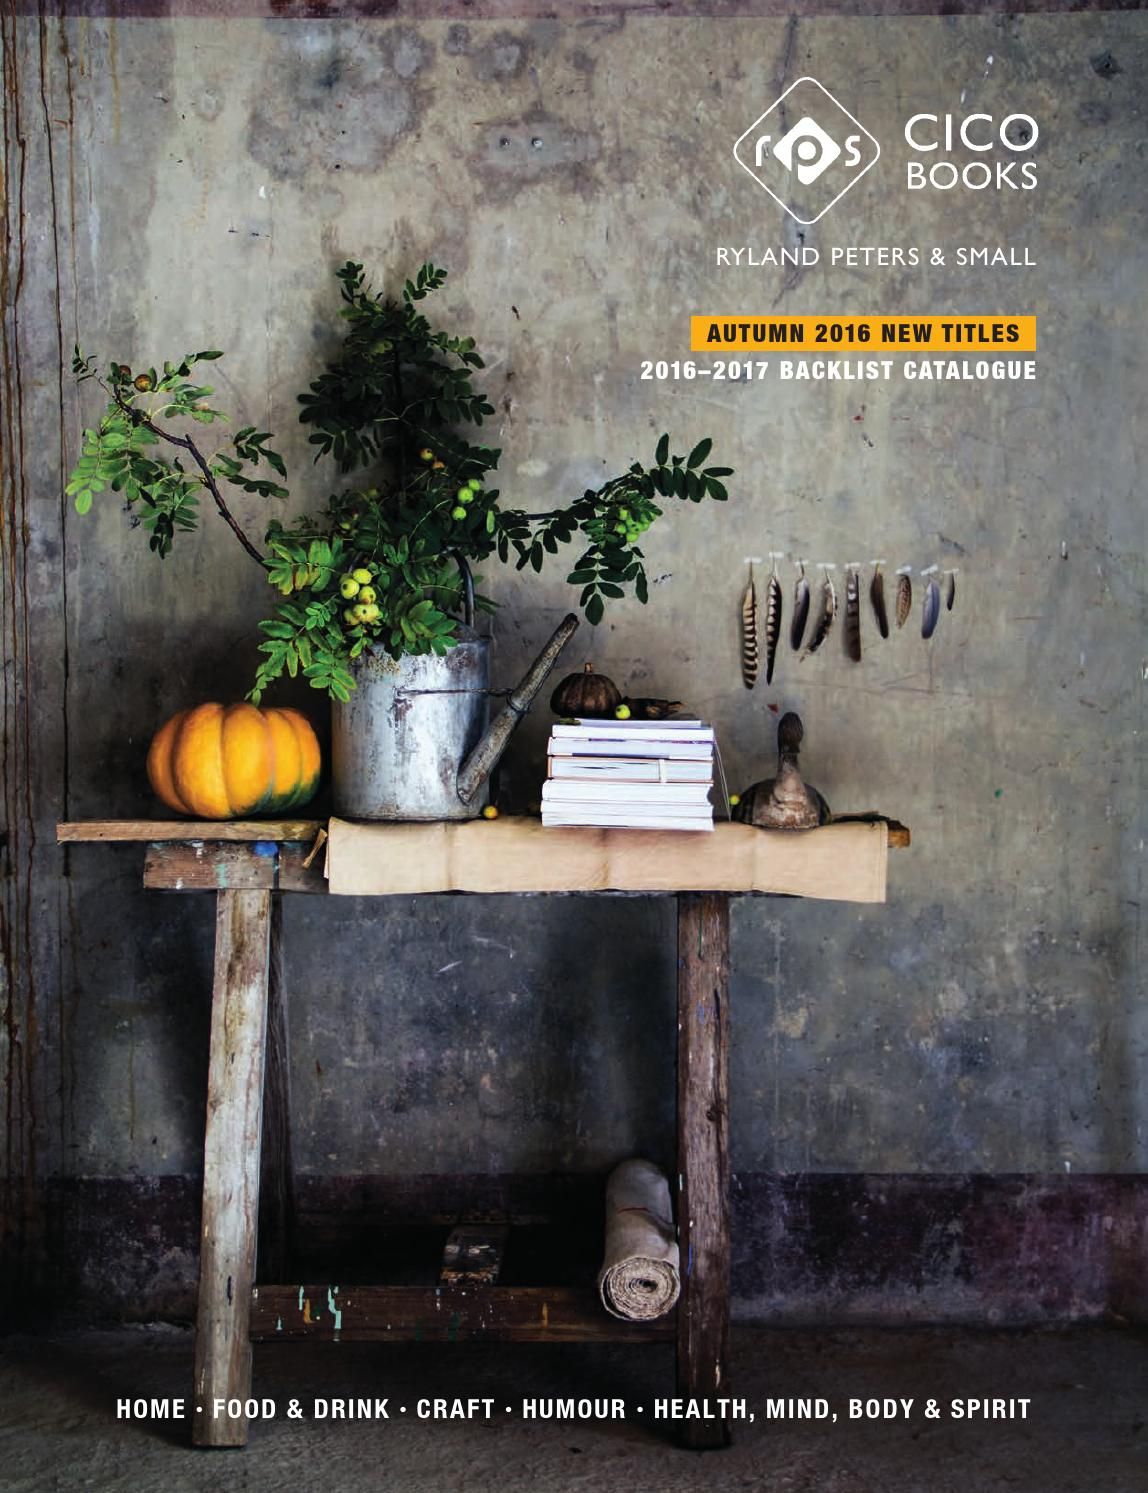 Autumn 2016 Uk Catalogue By Ryland Peters Small And Cico Books Issuu Jaket Fleece Verdure Green Combie